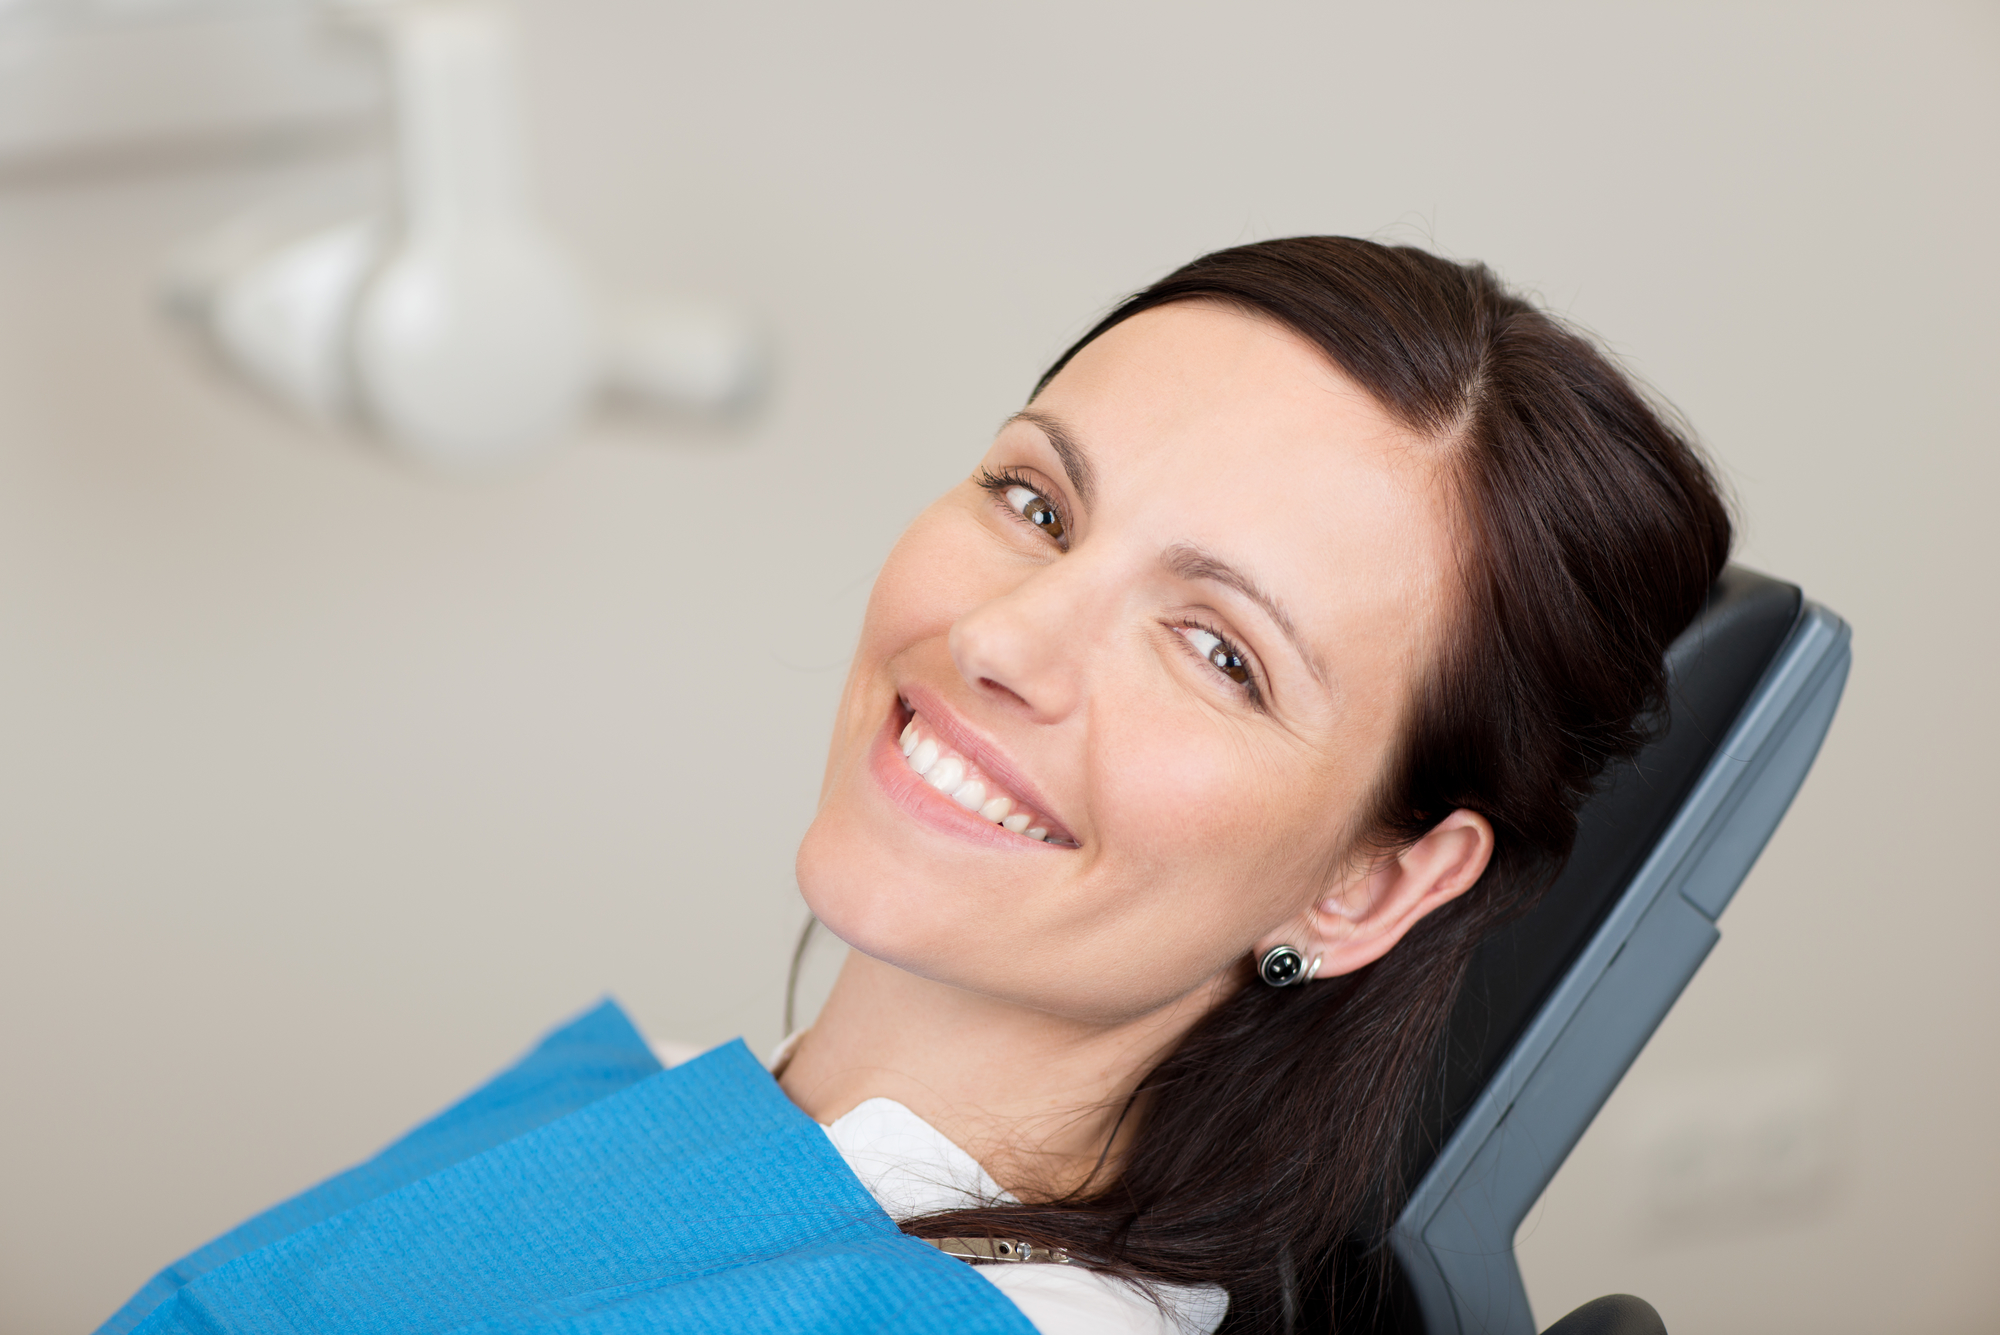 where is the best tmj pembroke pines treatment?